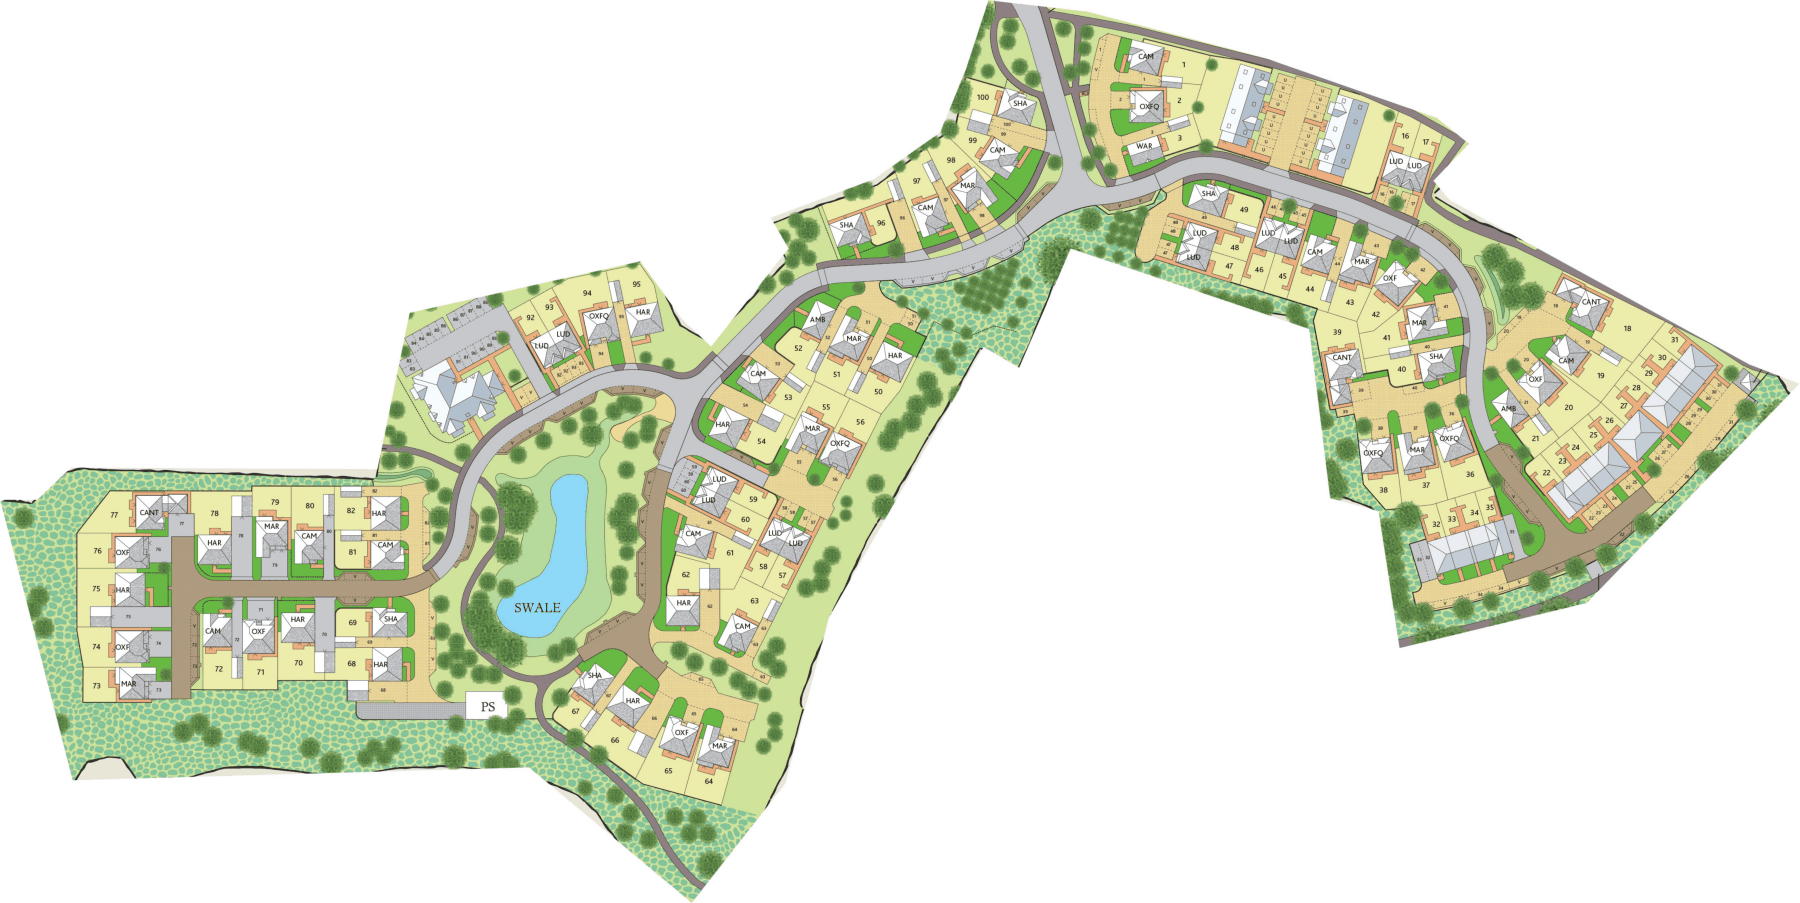 Interactive Site Plan 2576v3 plan